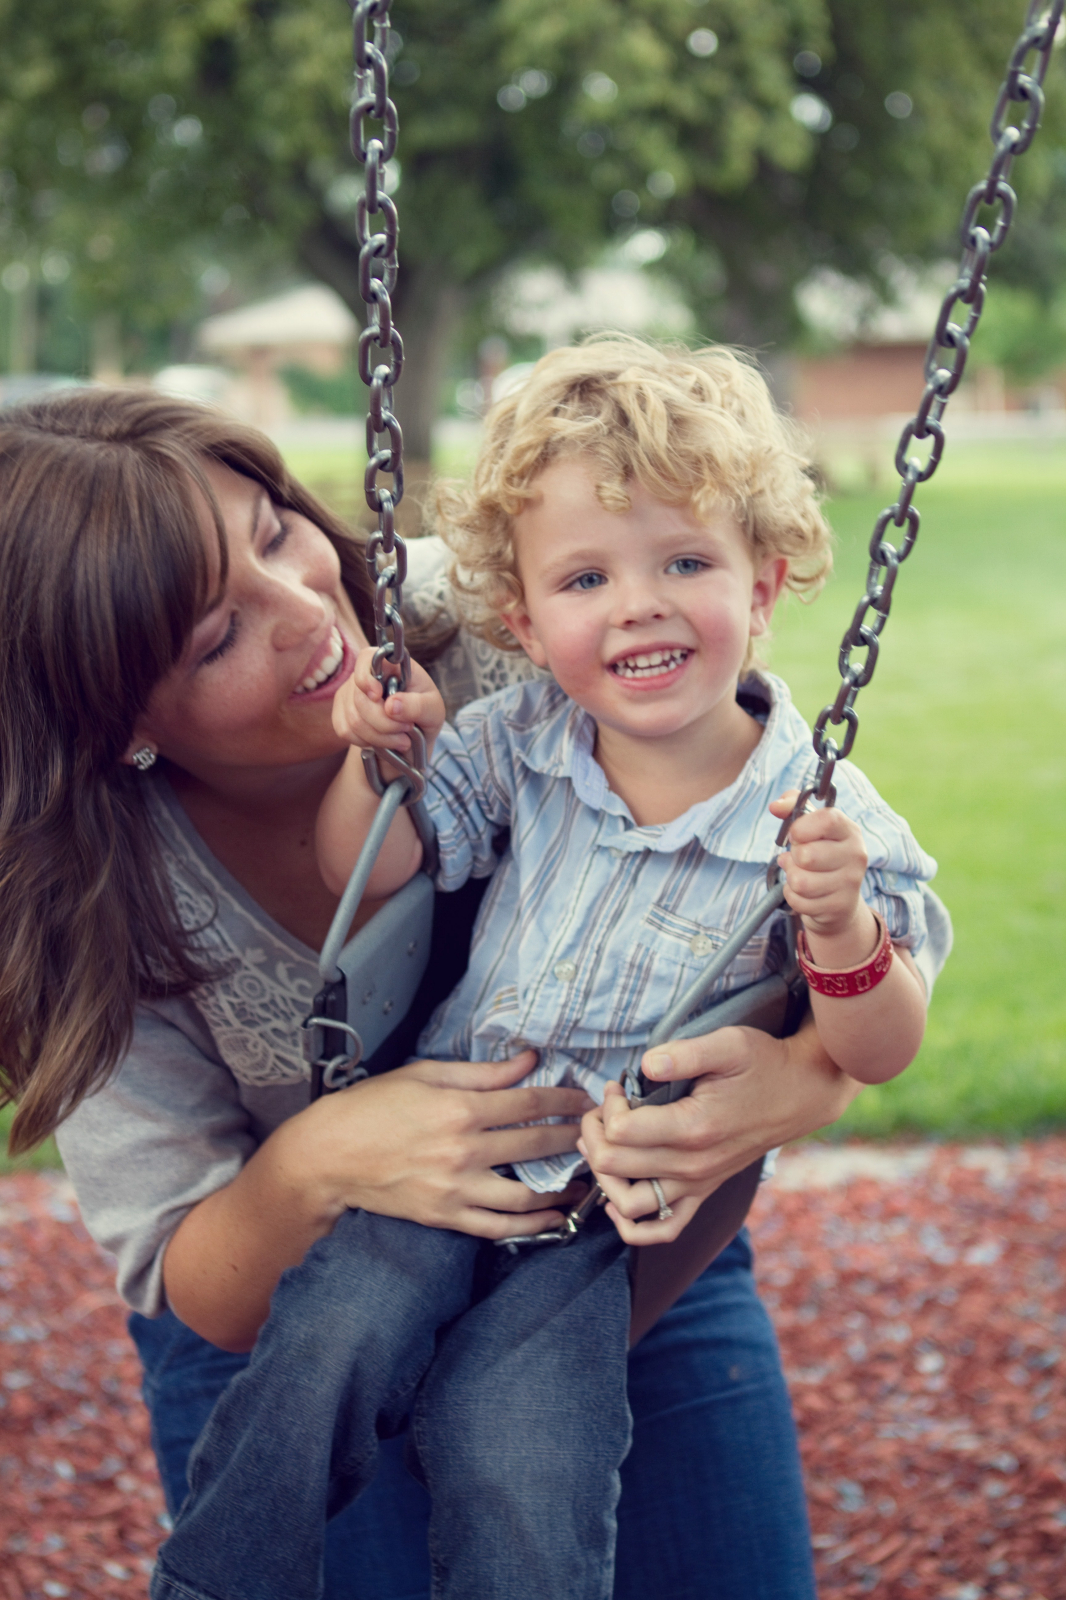 Images - Swinging Mother